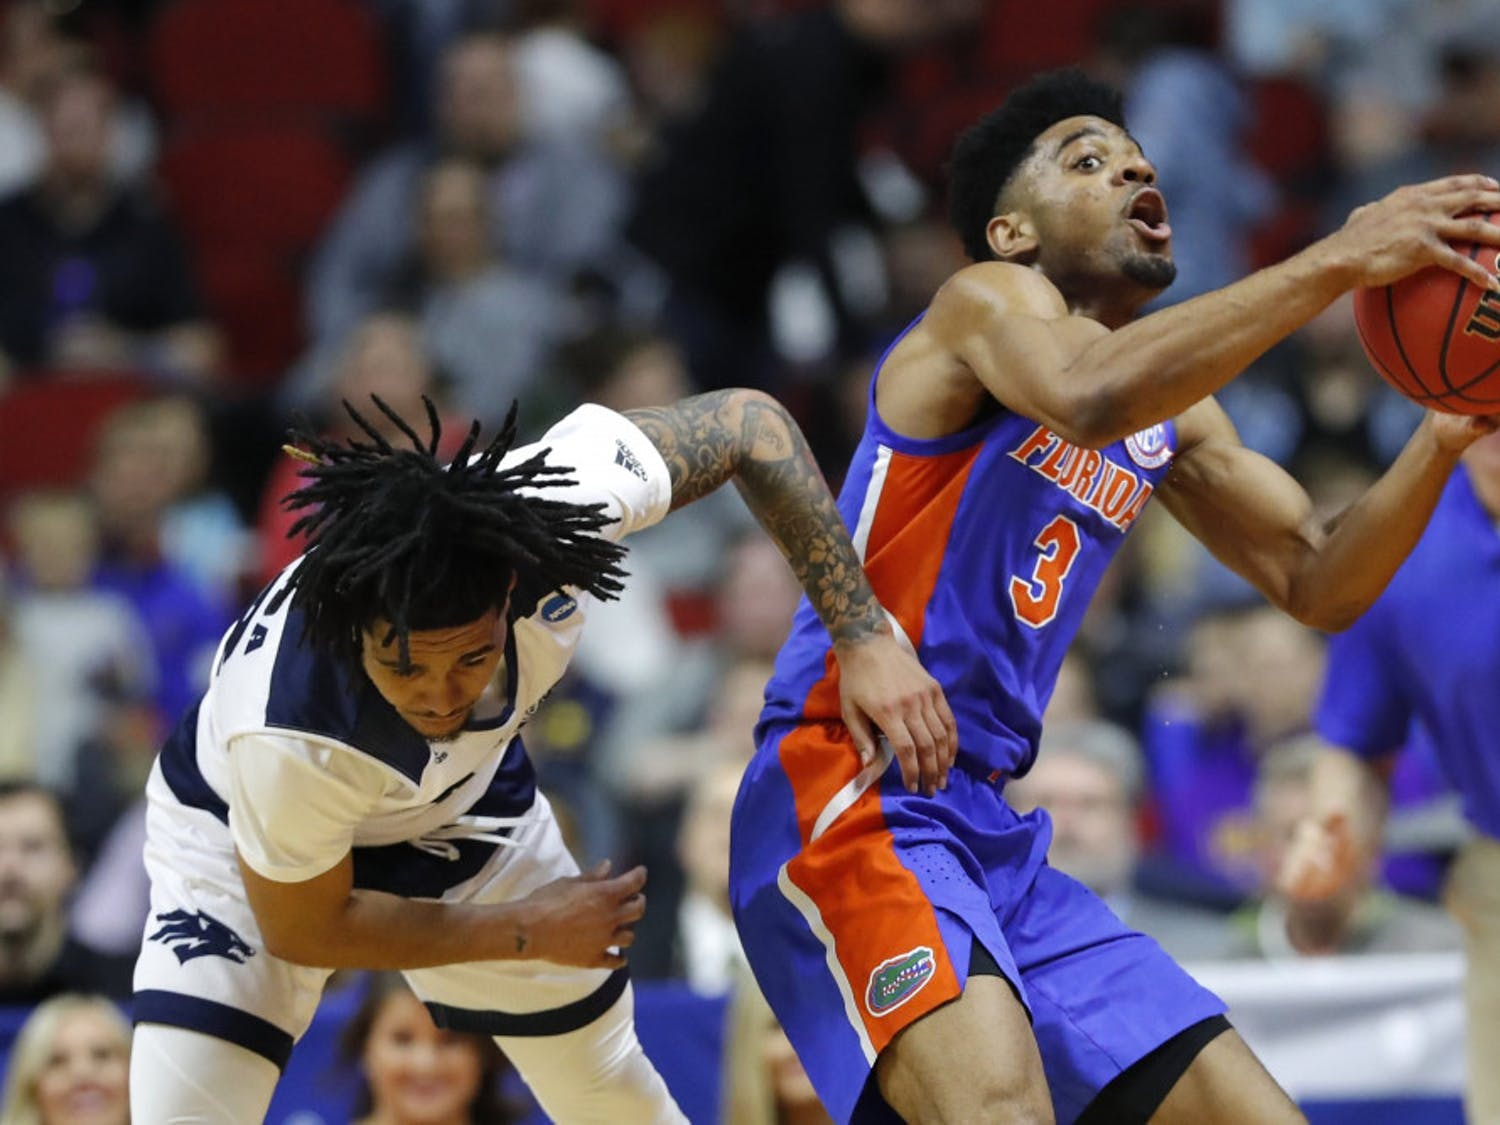 Florida guard Jalen Hudson (right) grabs a loose ball over Nevada guard Jazz Johnson during the Gators' 70-61 win in the First Round in the NCAA Tournament on Thursday in Des Moines, Iowa.